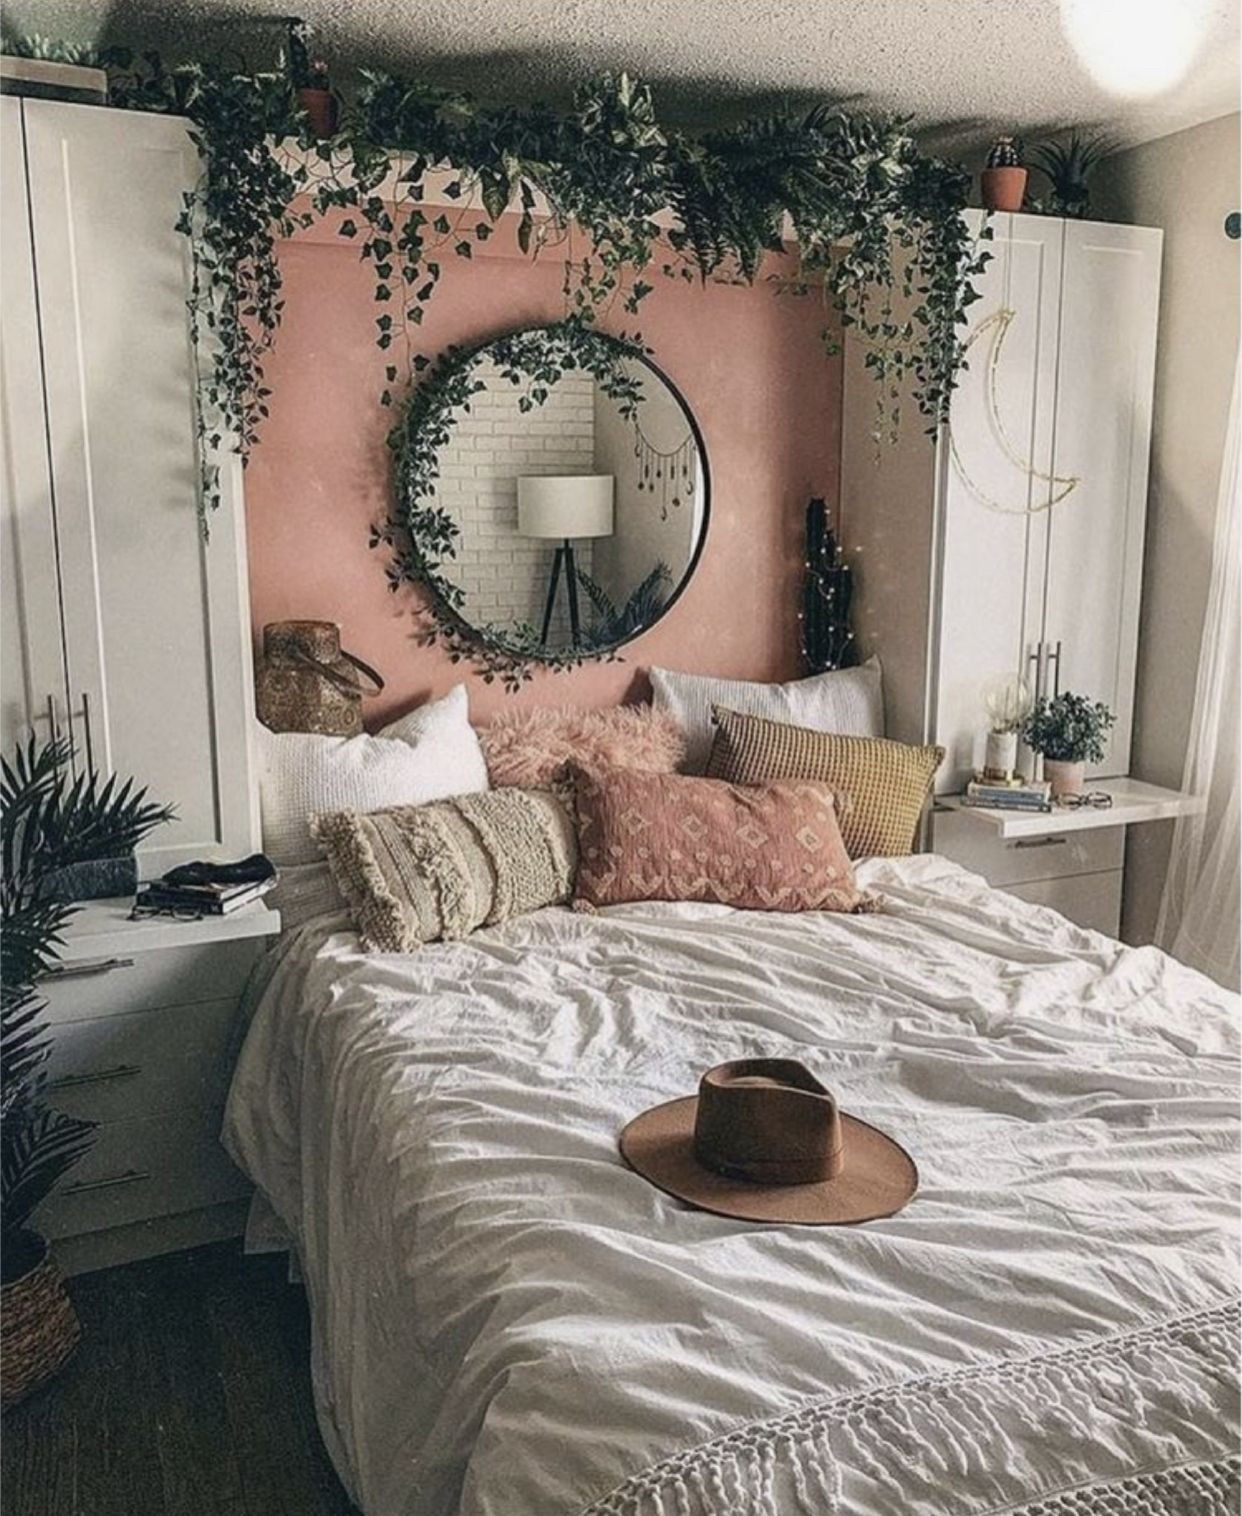 Pin by Aubrey Danielle | Girl's Guide on CHIC HOME DECOR ...